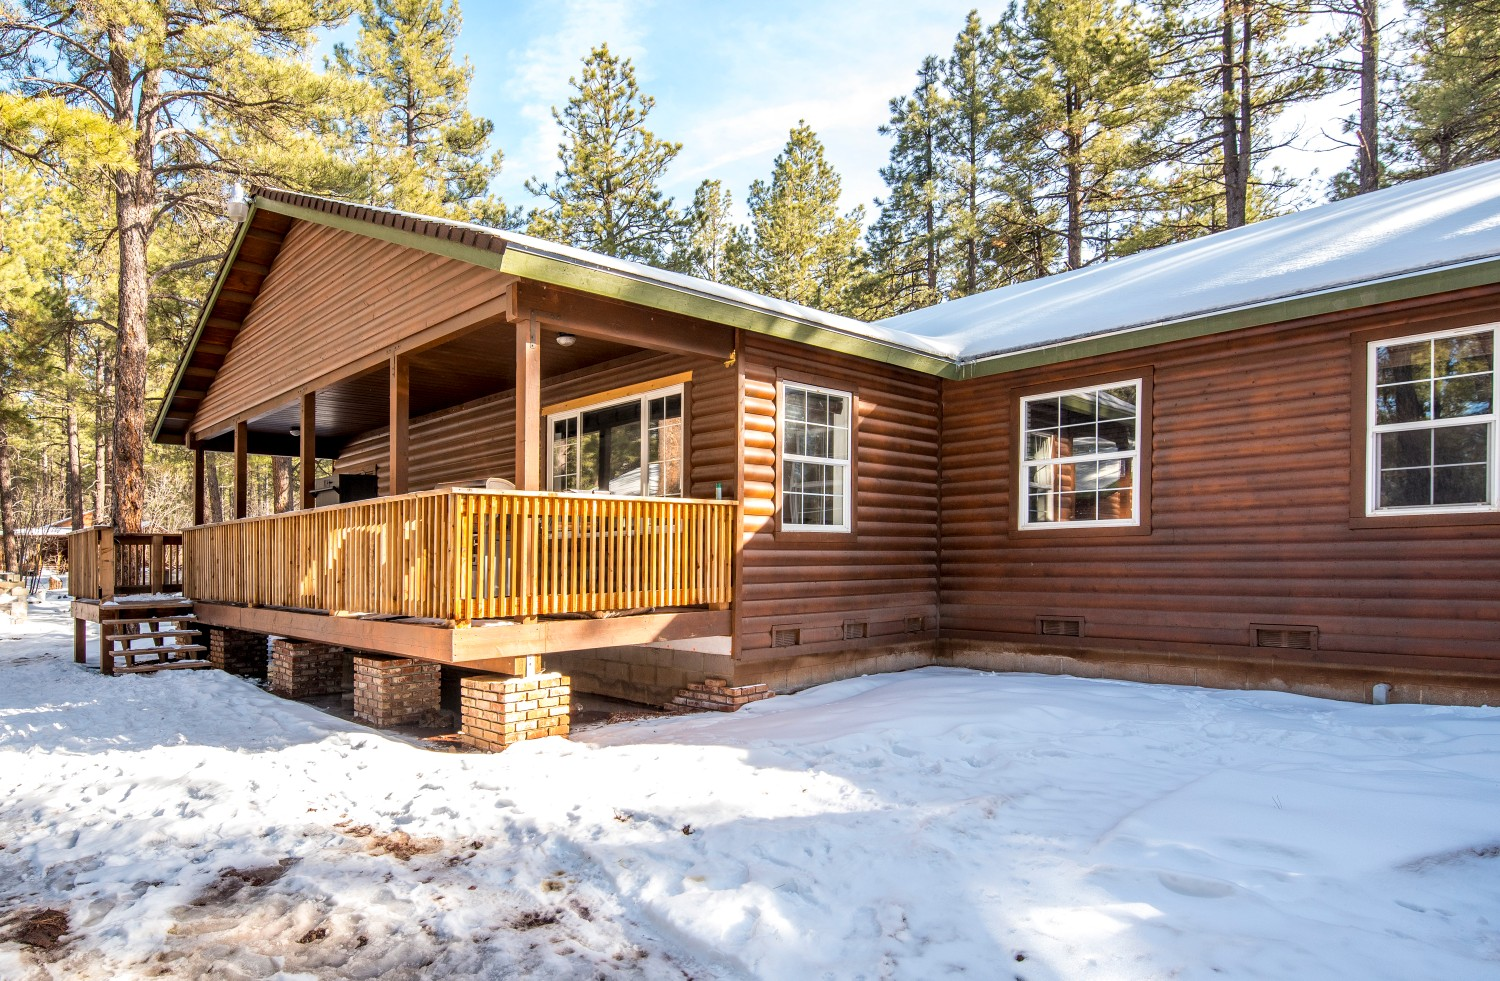 3488 Pine Top Drive, Williams, AZ 86046